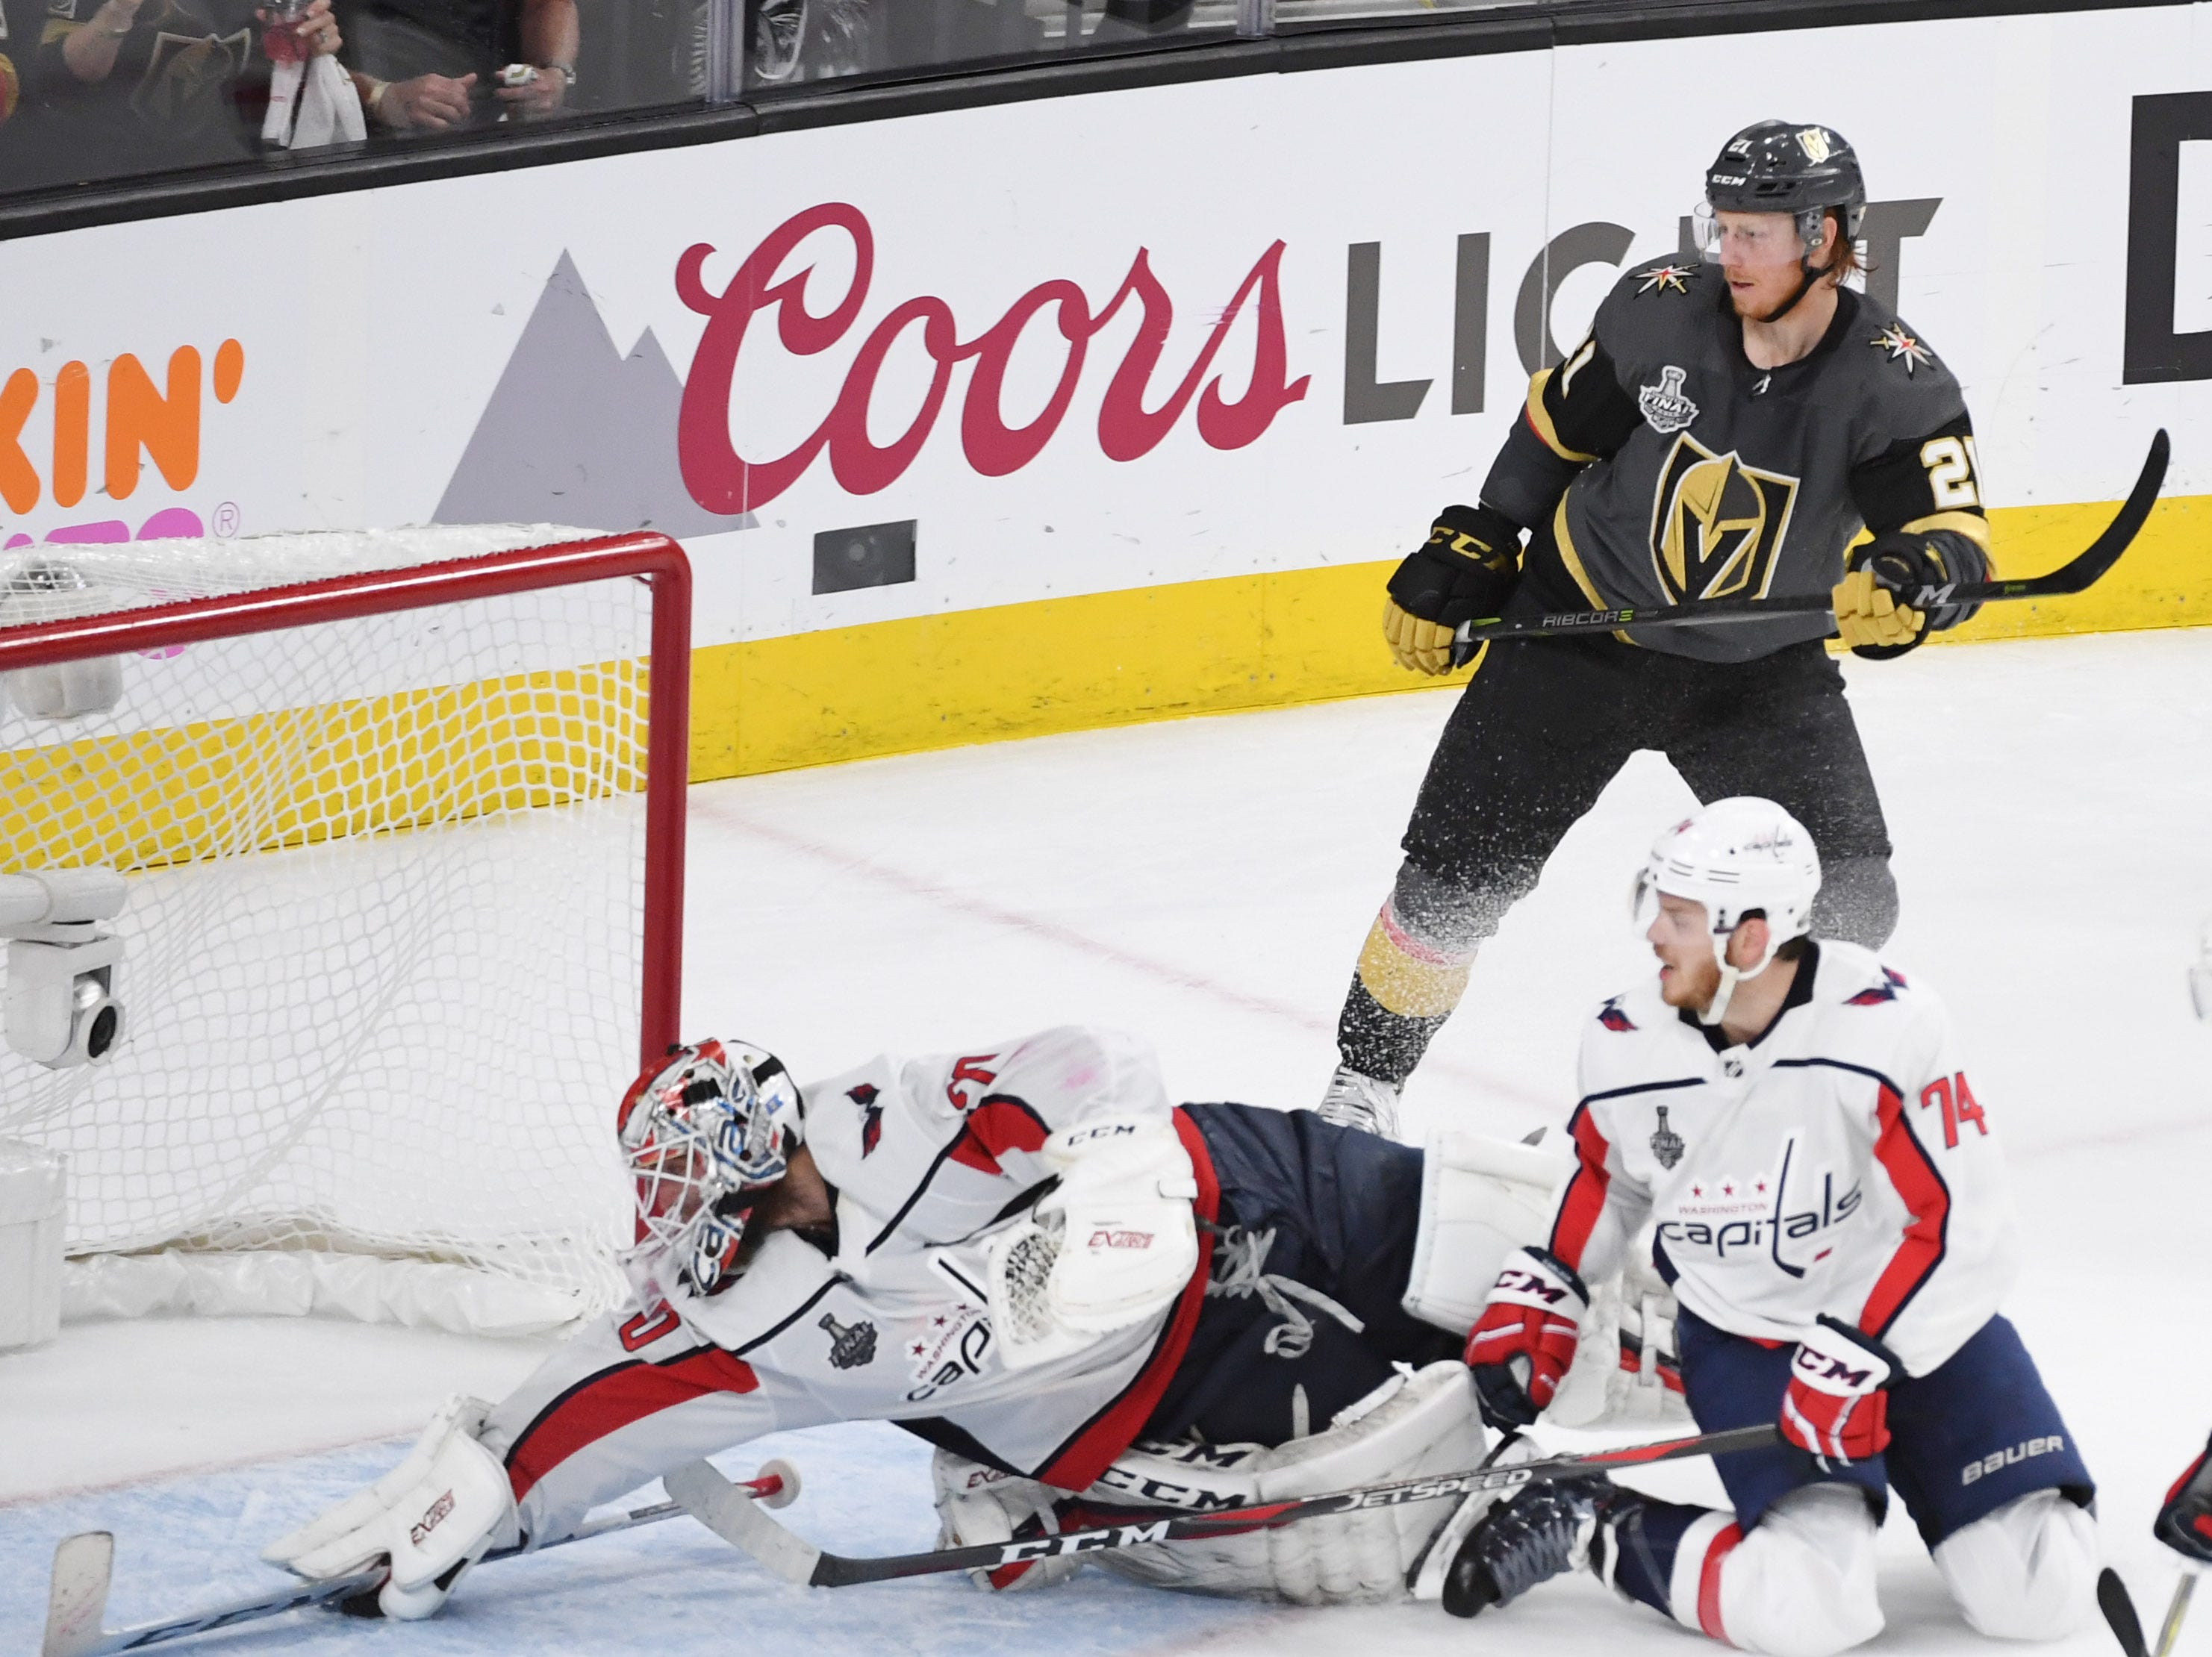 May 30: Washington Capitals goaltender Braden Holtby (70) makes a diving save against the Vegas Golden Knights in the third period of Game 2 of the Stanley Cup Final.